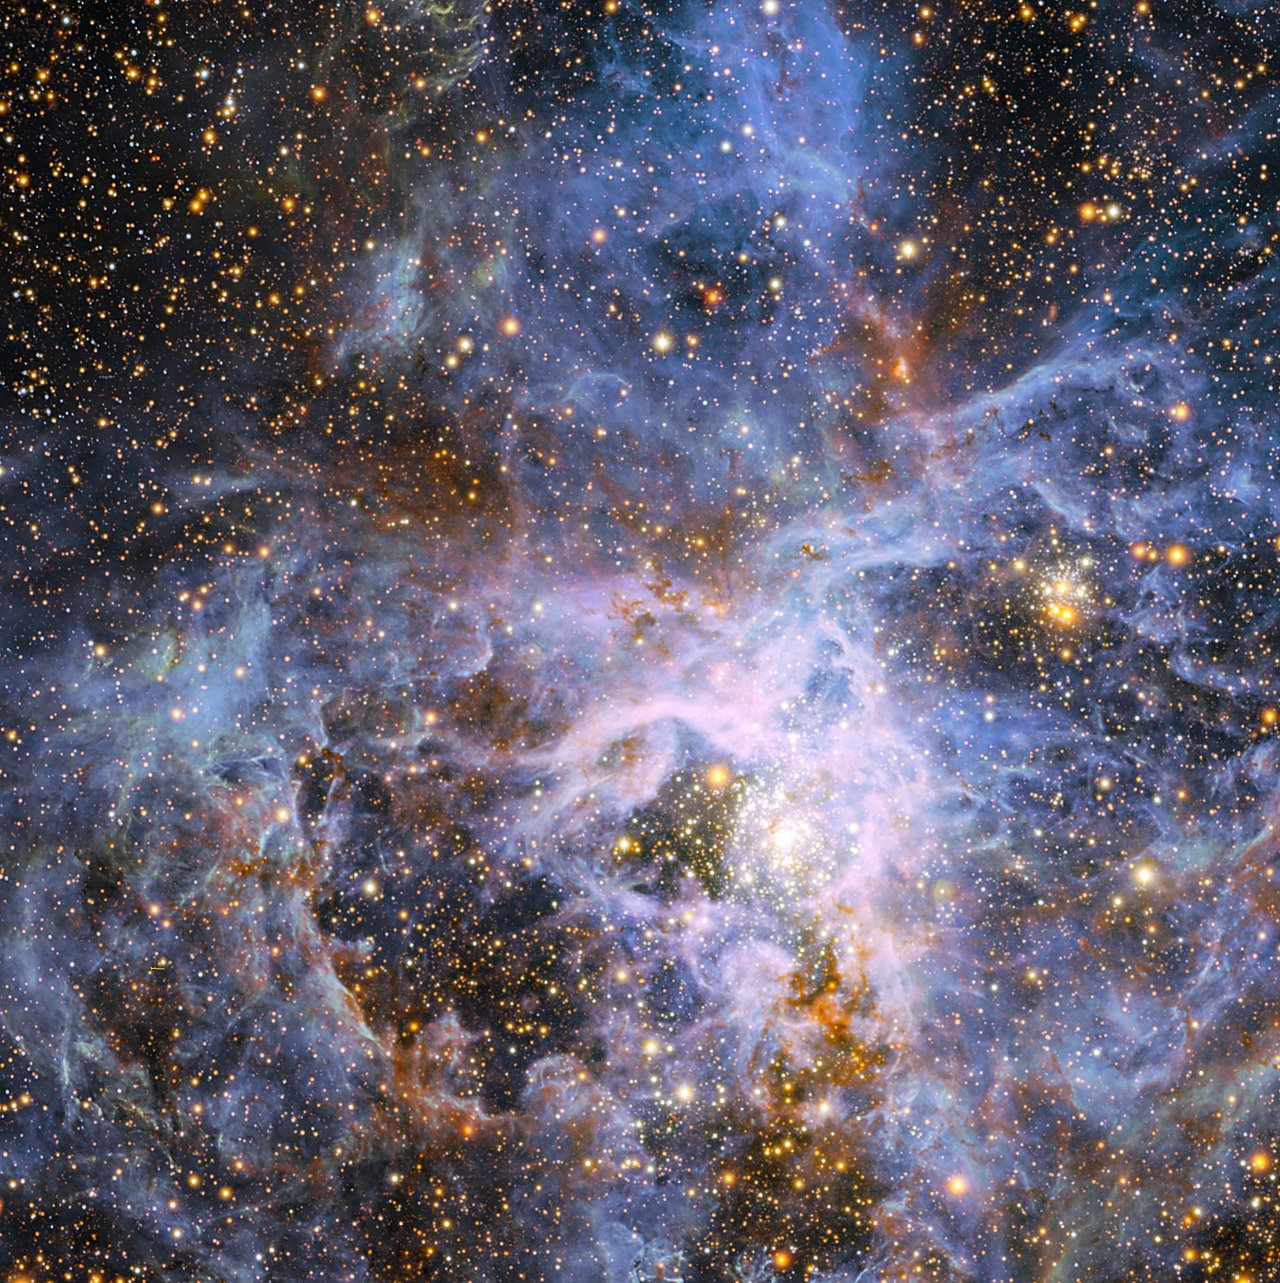 This view shows part of the very active star-forming region around the Tarantula Nebula in the Large Magellanic Cloud, a small neighbour of the Milky Way. At the exact centre lies the brilliant but isolated star VFTS 682 and to its lower right the very rich star cluster R 136. The origins of VFTS 682 are unclear — was it ejected from R 136 or did it form on its own? The star appears yellow-red in this view, which includes both visible-light and infrared images from the Wide Field Imager at the 2.2-metre MPG/ESO telescope at La Silla and the 4.1-metre infrared VISTA telescope at Paranal, because of the effects of dust.